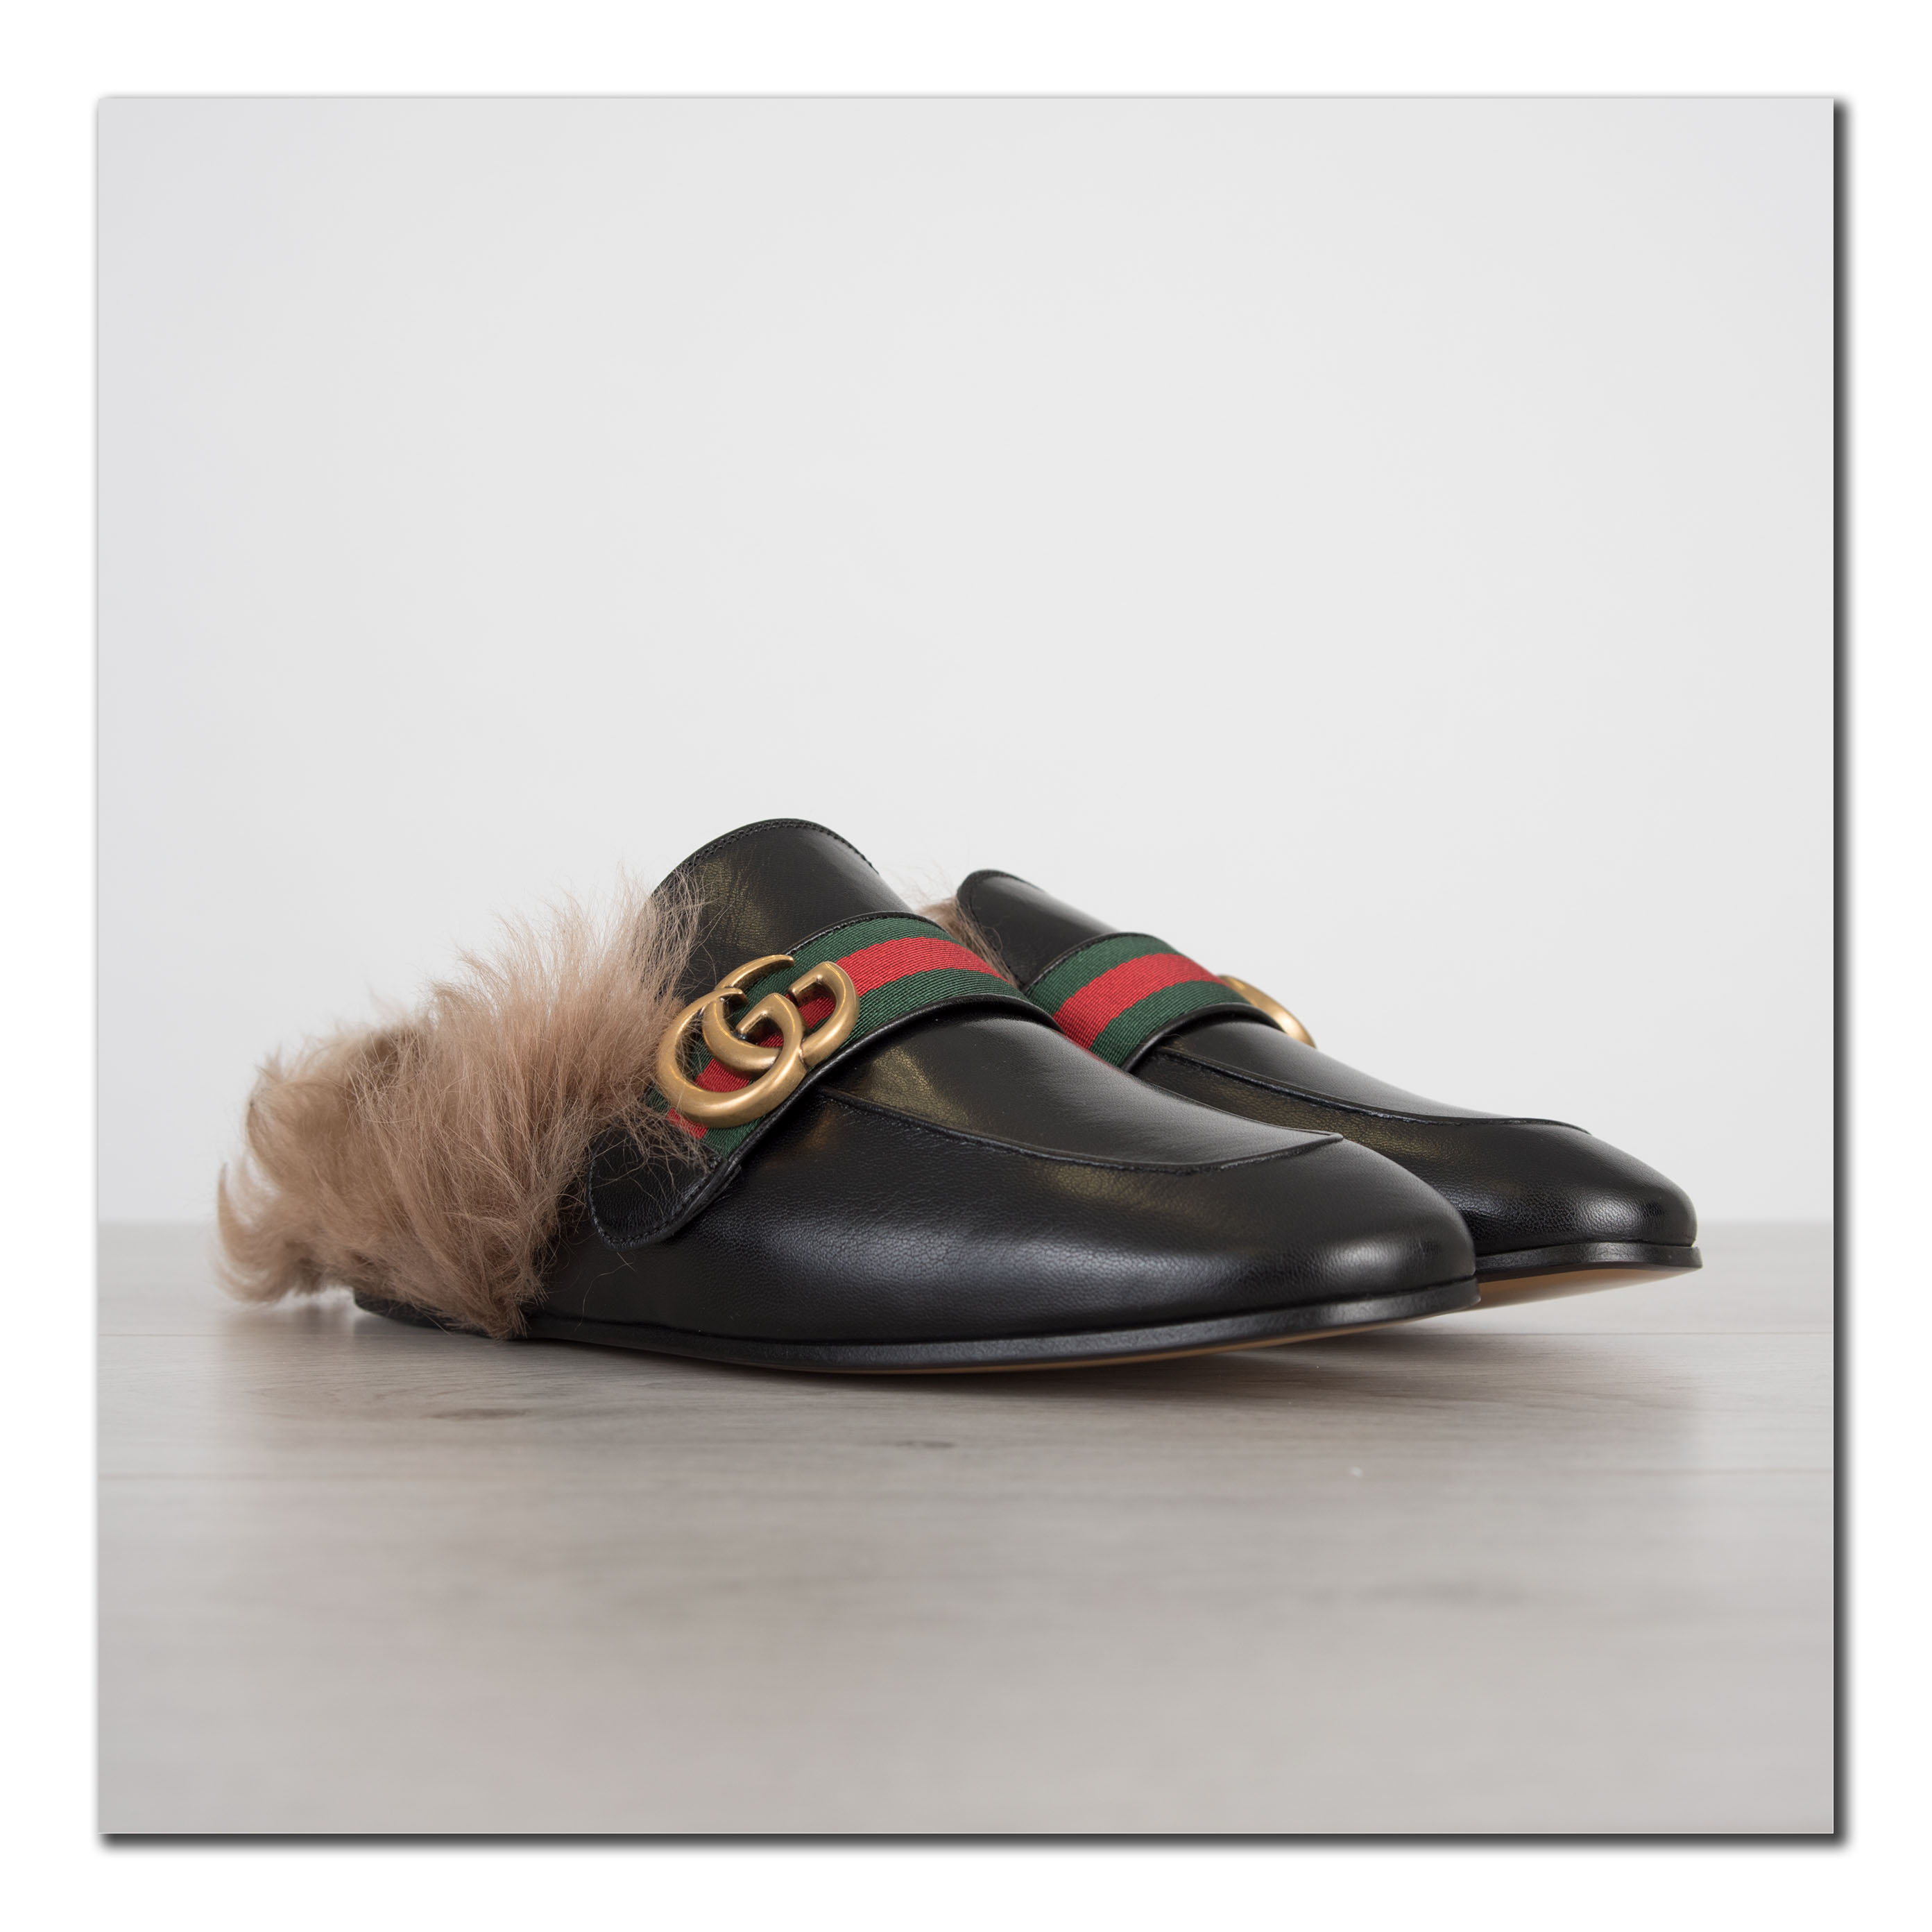 4bbe943c1 Details about GUCCI 995$ Authentic New Black Princetown Leather Slipper  With Double G